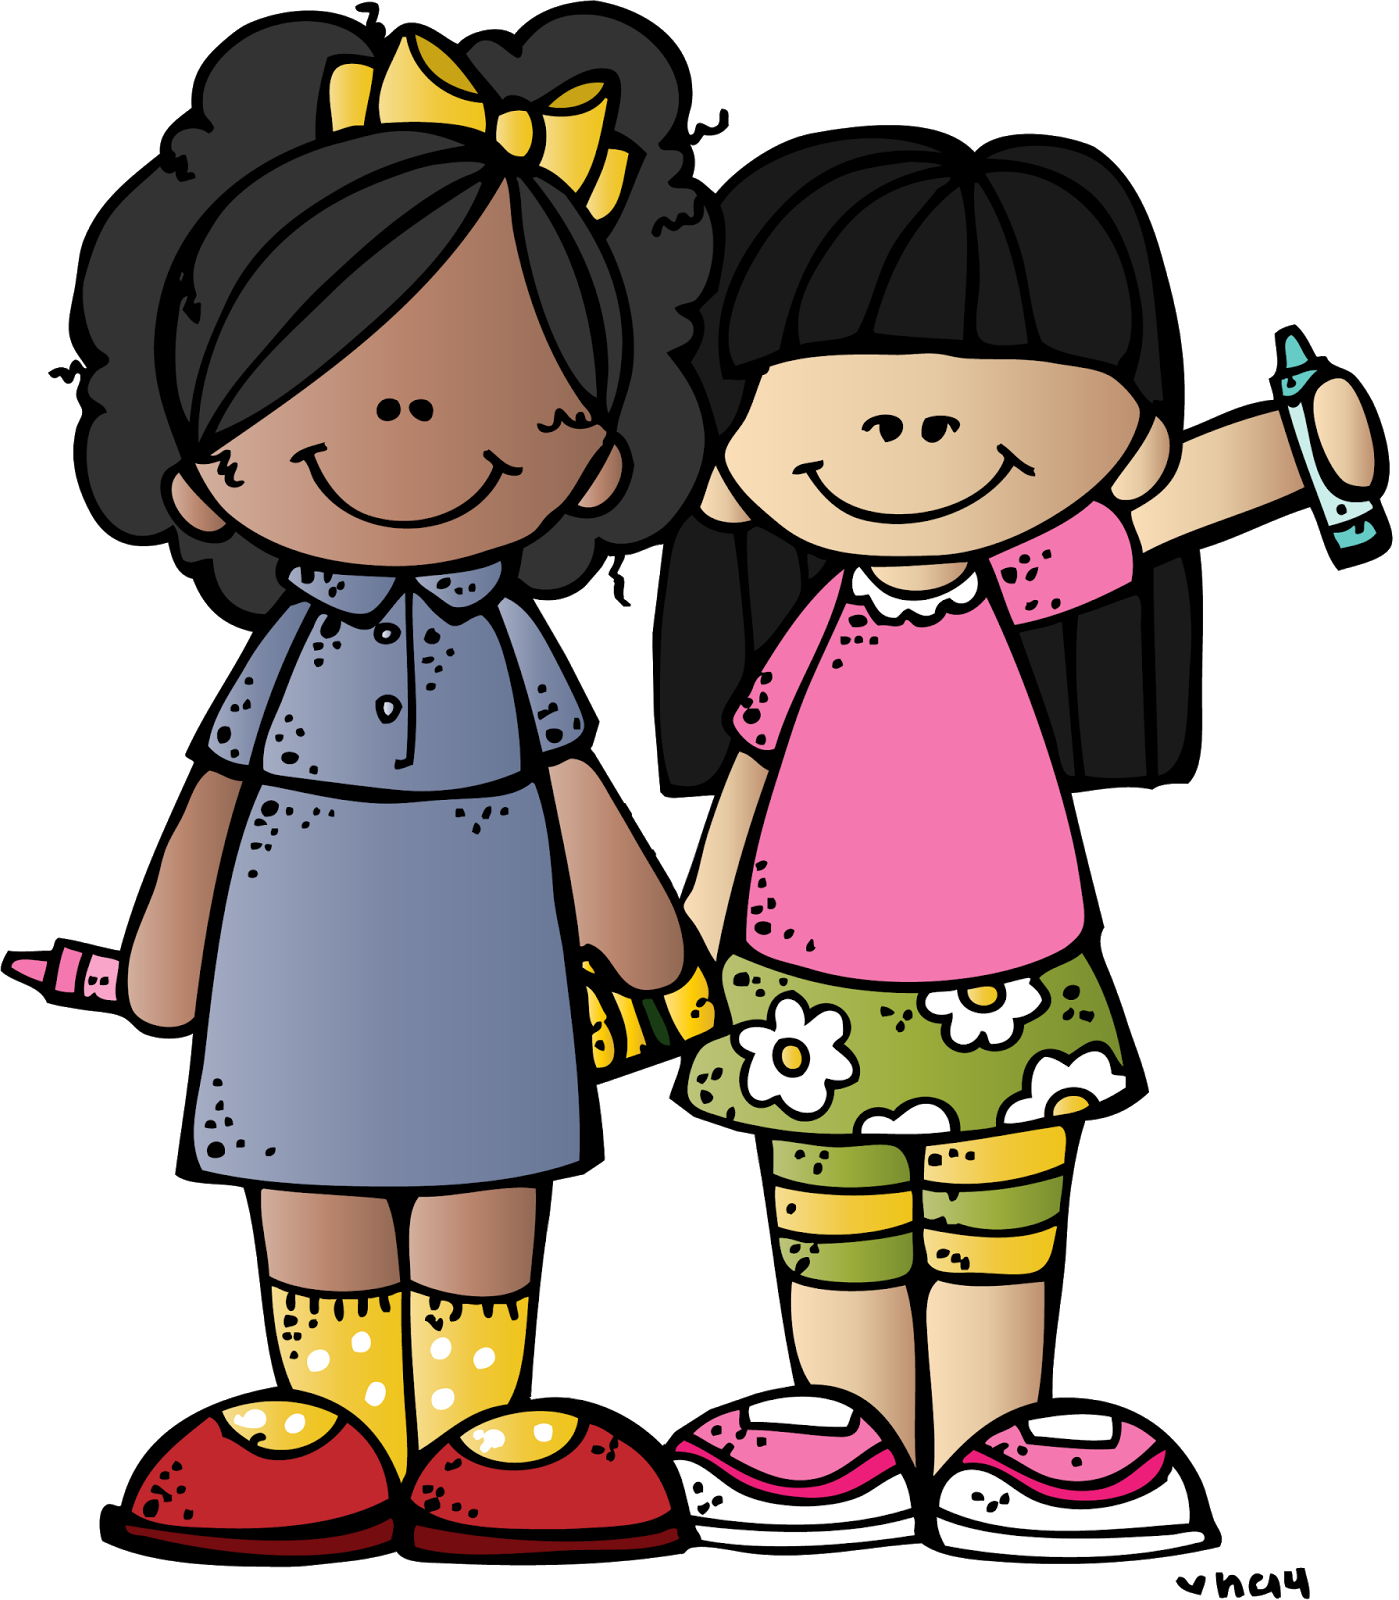 Friendship clipart friends house. Good clip arts for